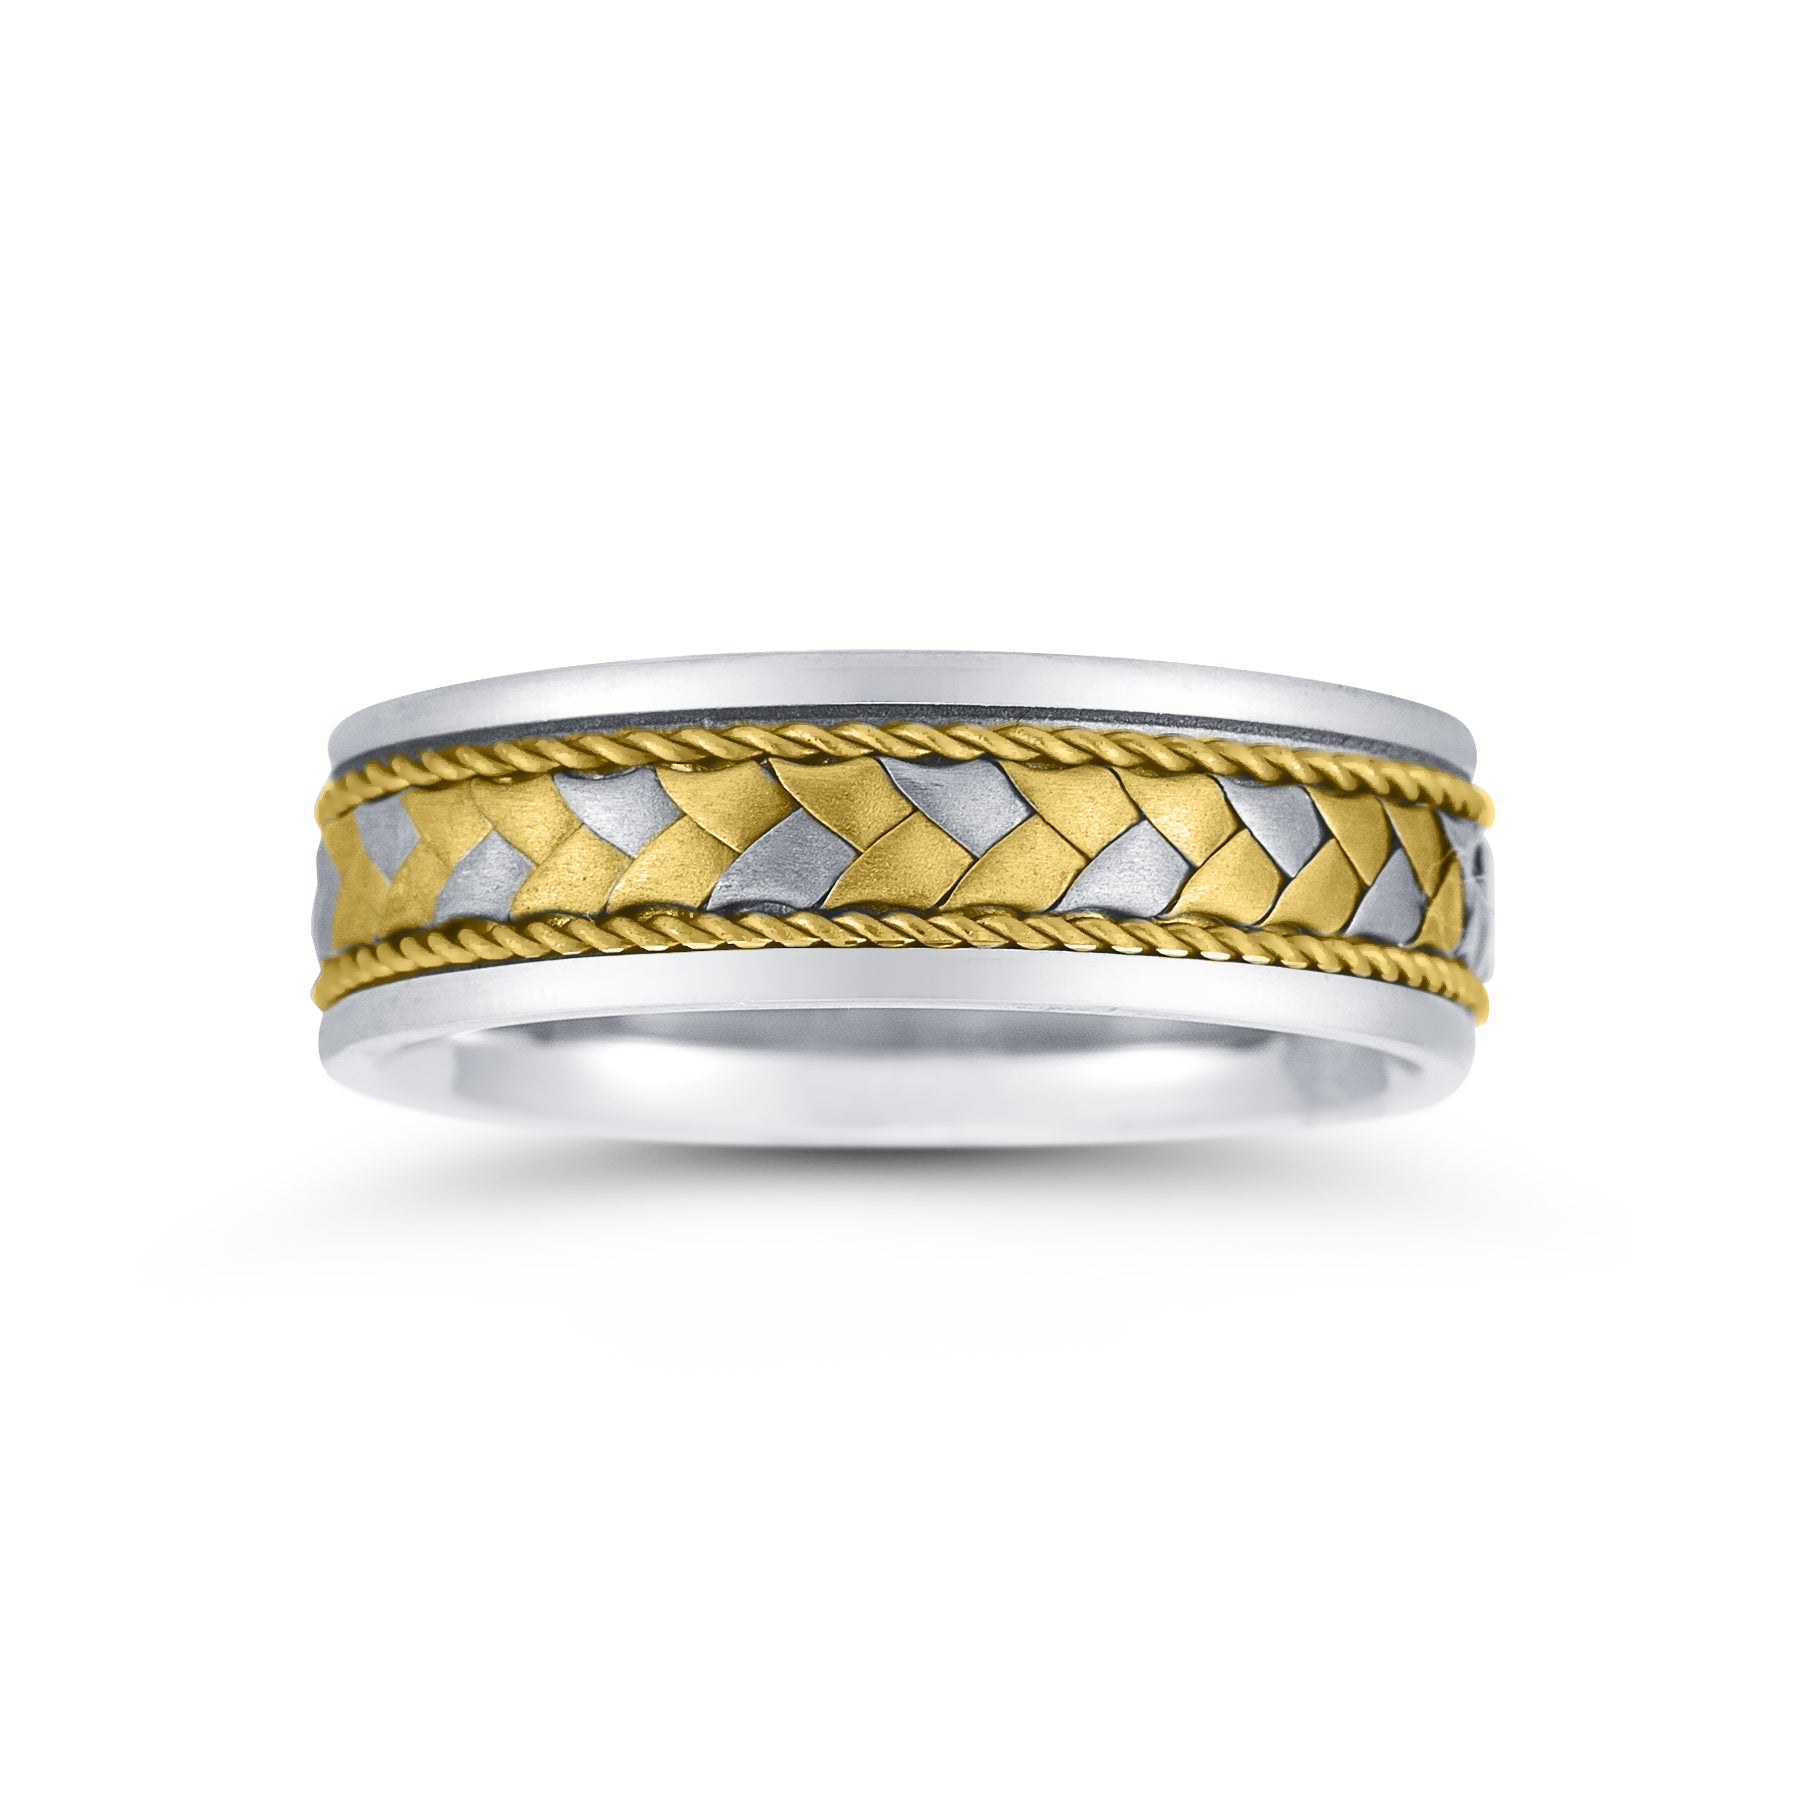 Flat Woven Center Wedding Band, 7 MM, Size 10, 14K Gold